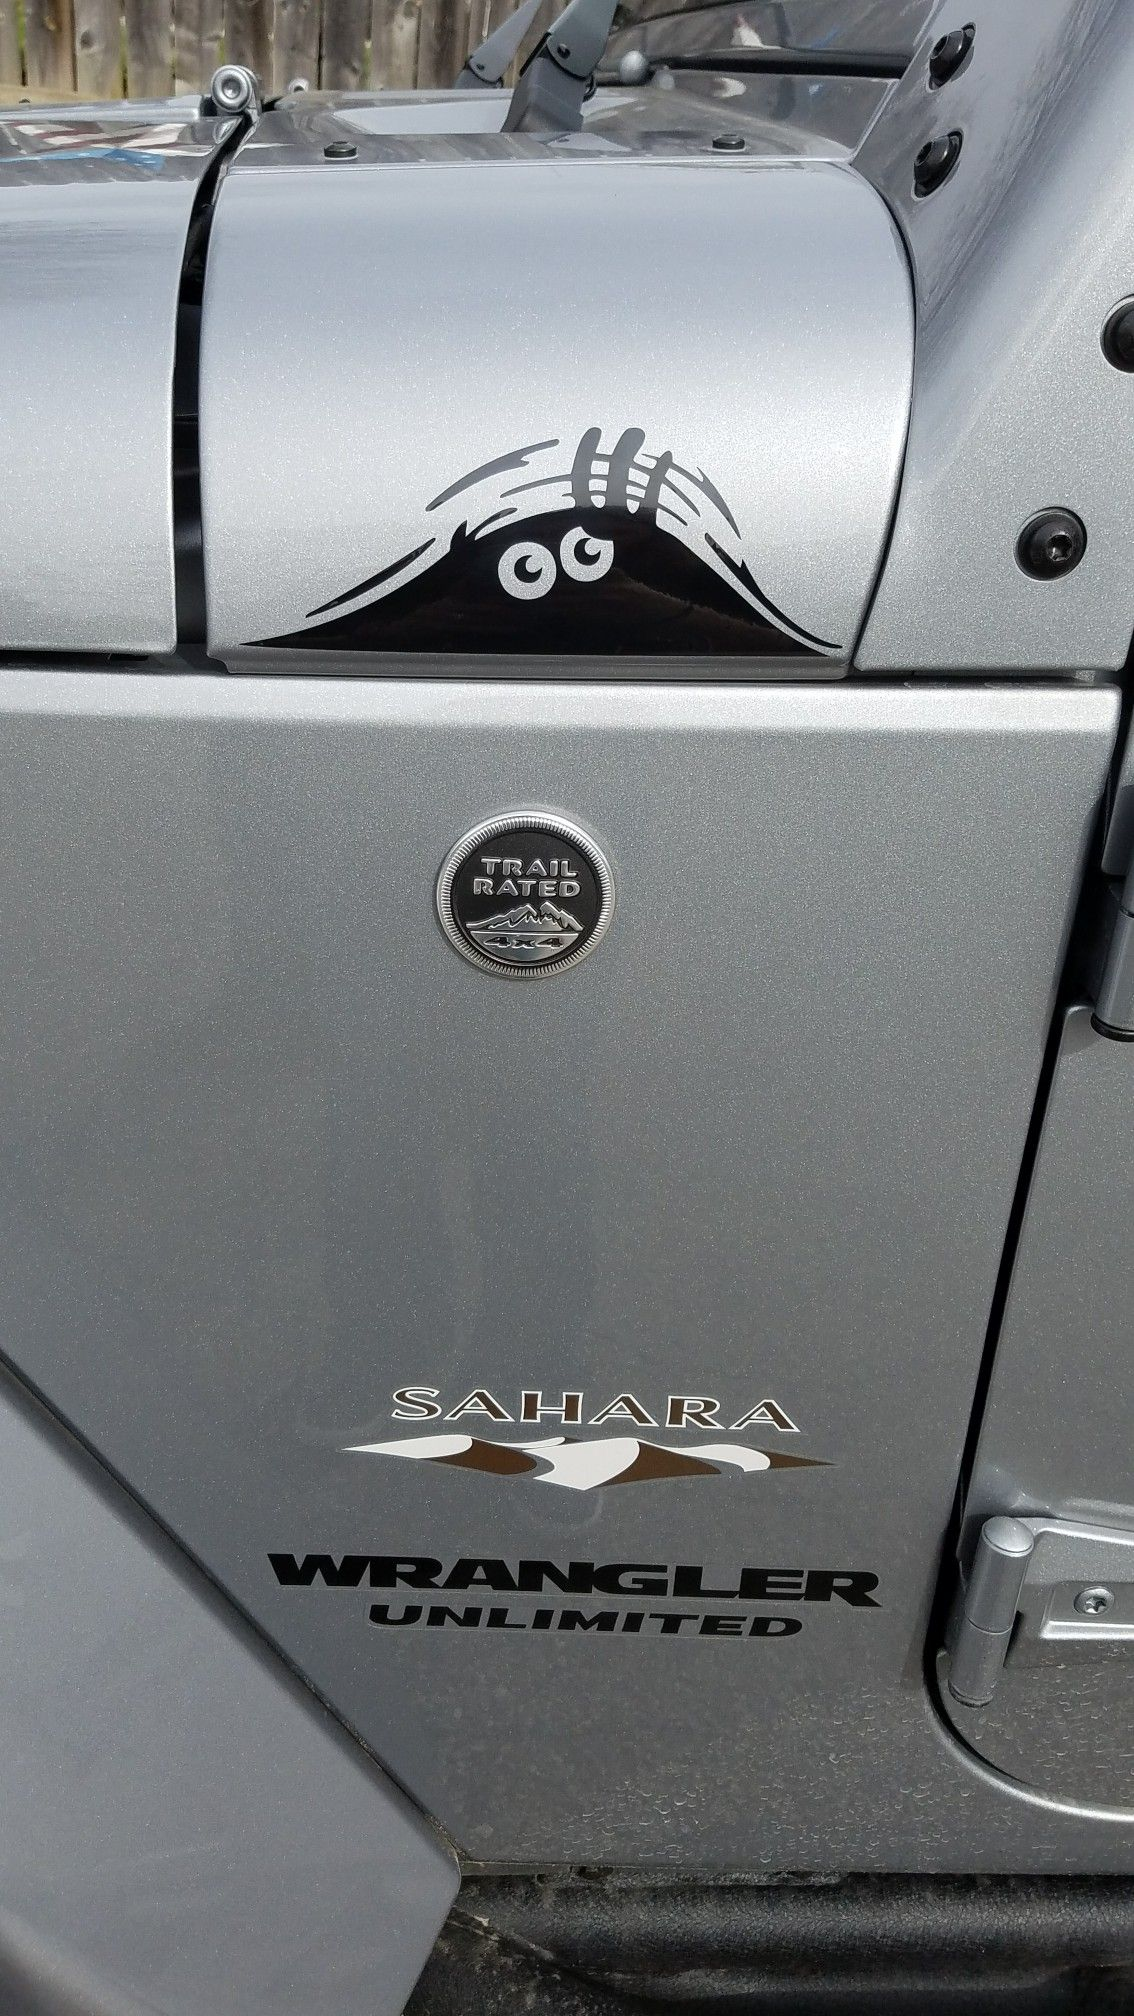 Peeking Monster Decal Bought On Amazon Jeep Stickers Jeep